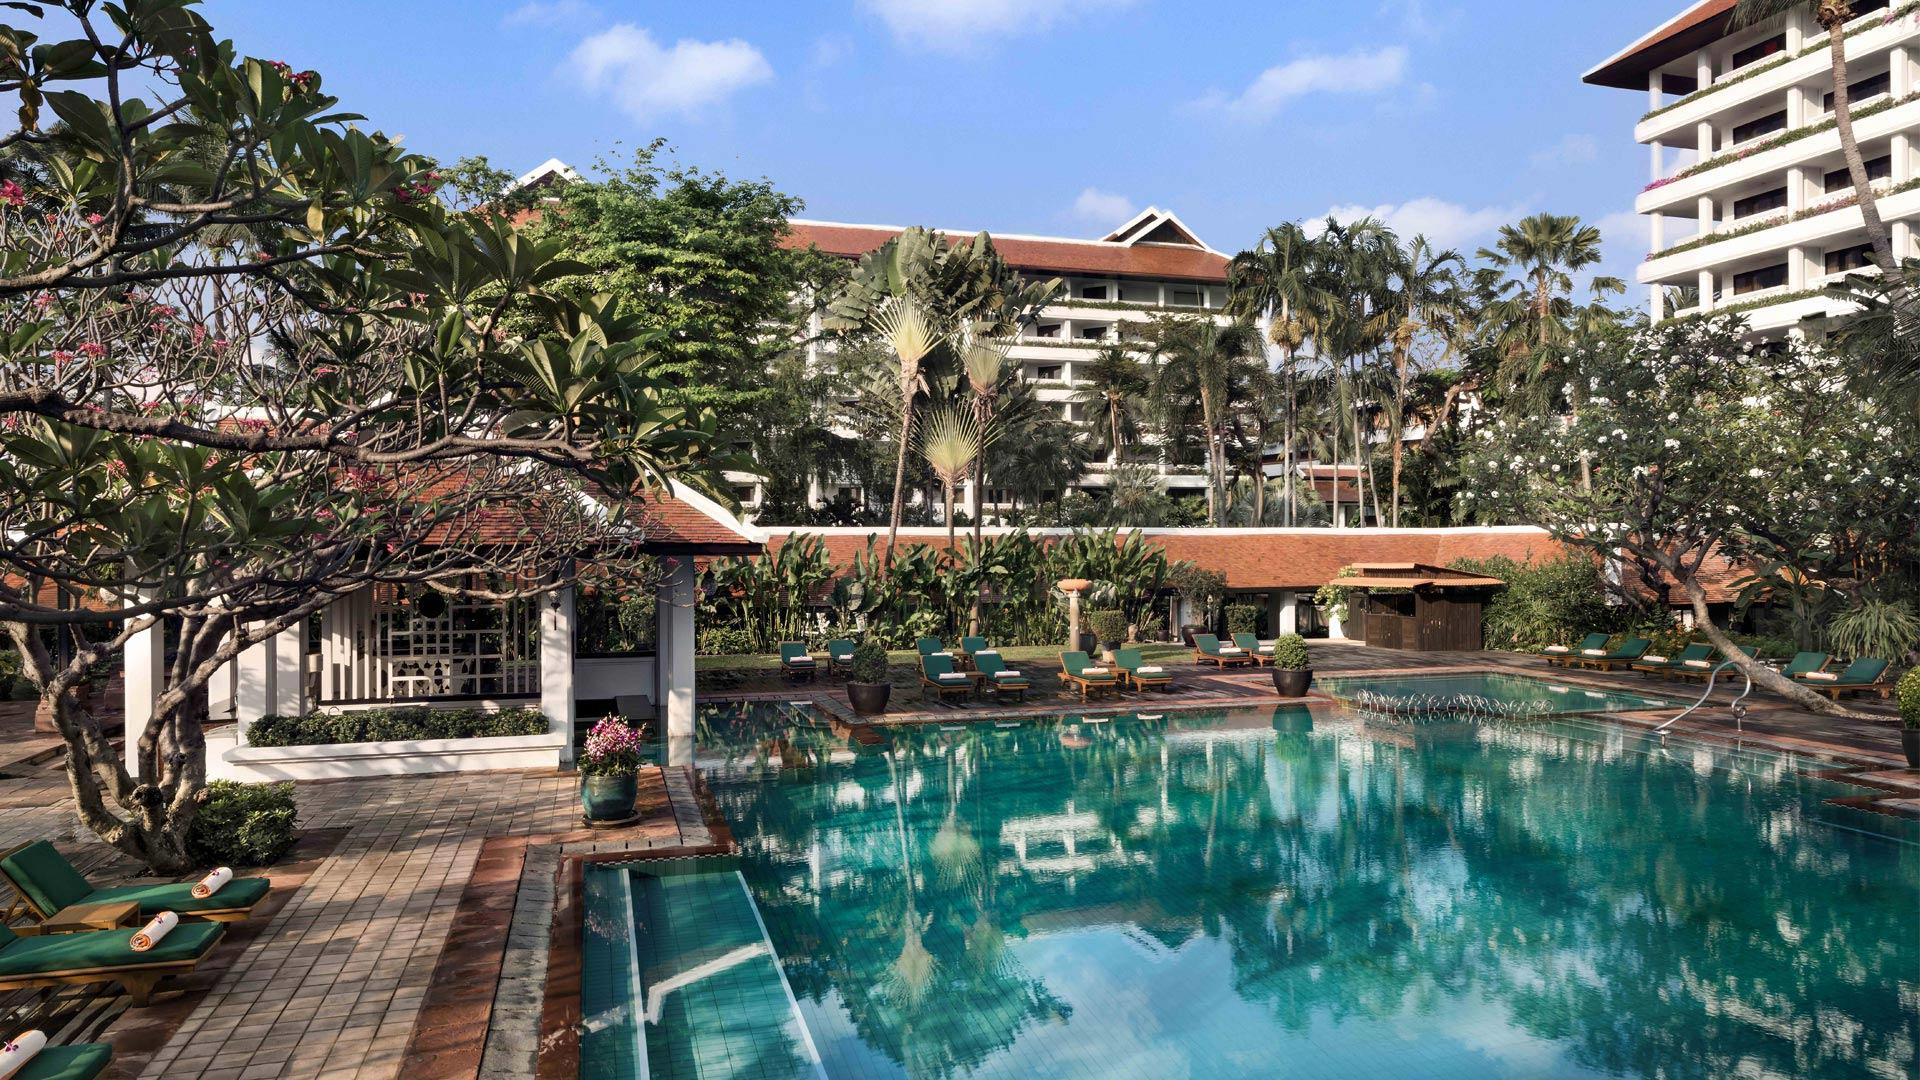 Anantara_Riverside_Bangkok_Swimming_Pool_Daylight_1920x1080